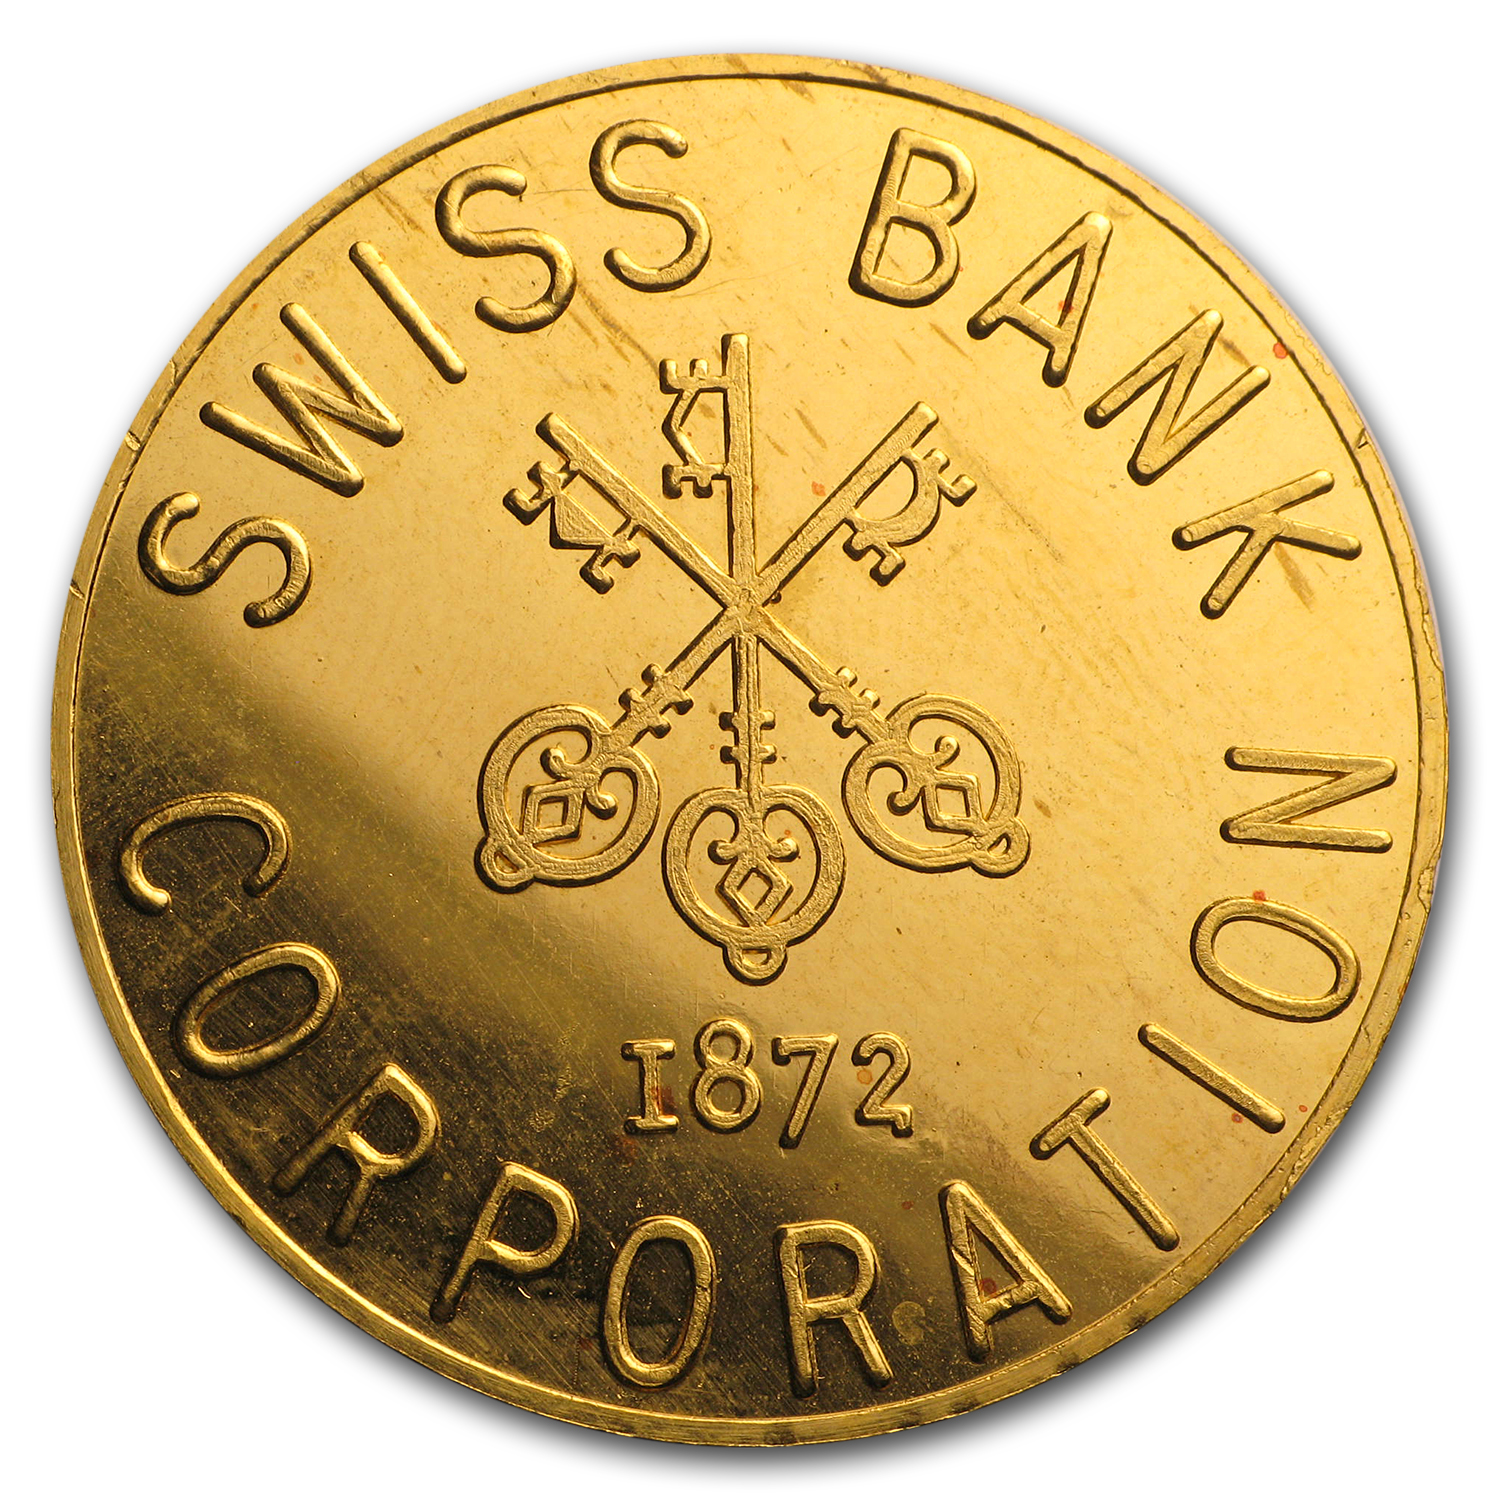 1 oz Gold Round - Swiss Bank Corporation